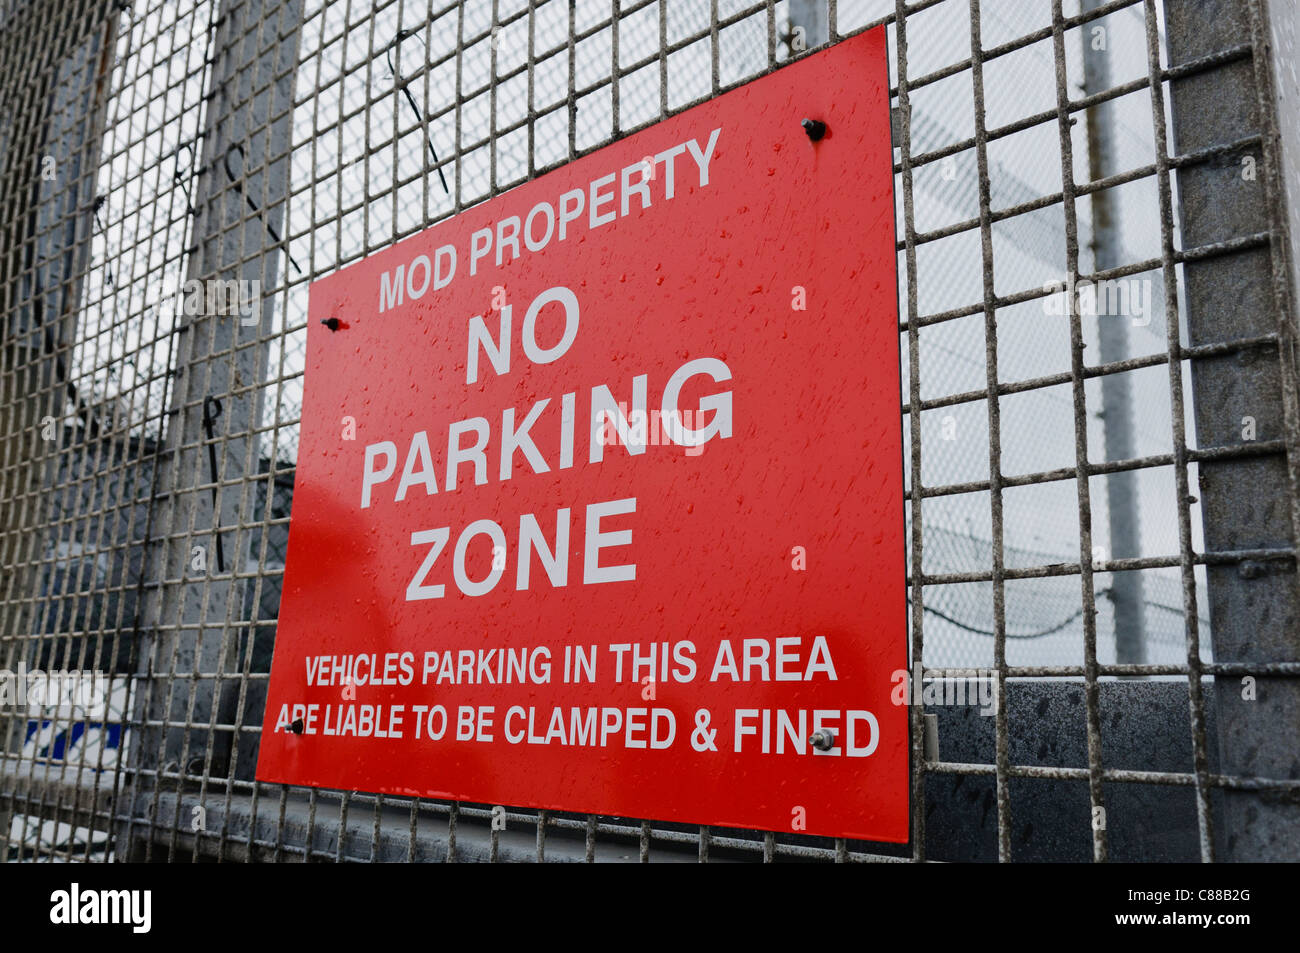 No parking zone MOD property sign - Stock Image